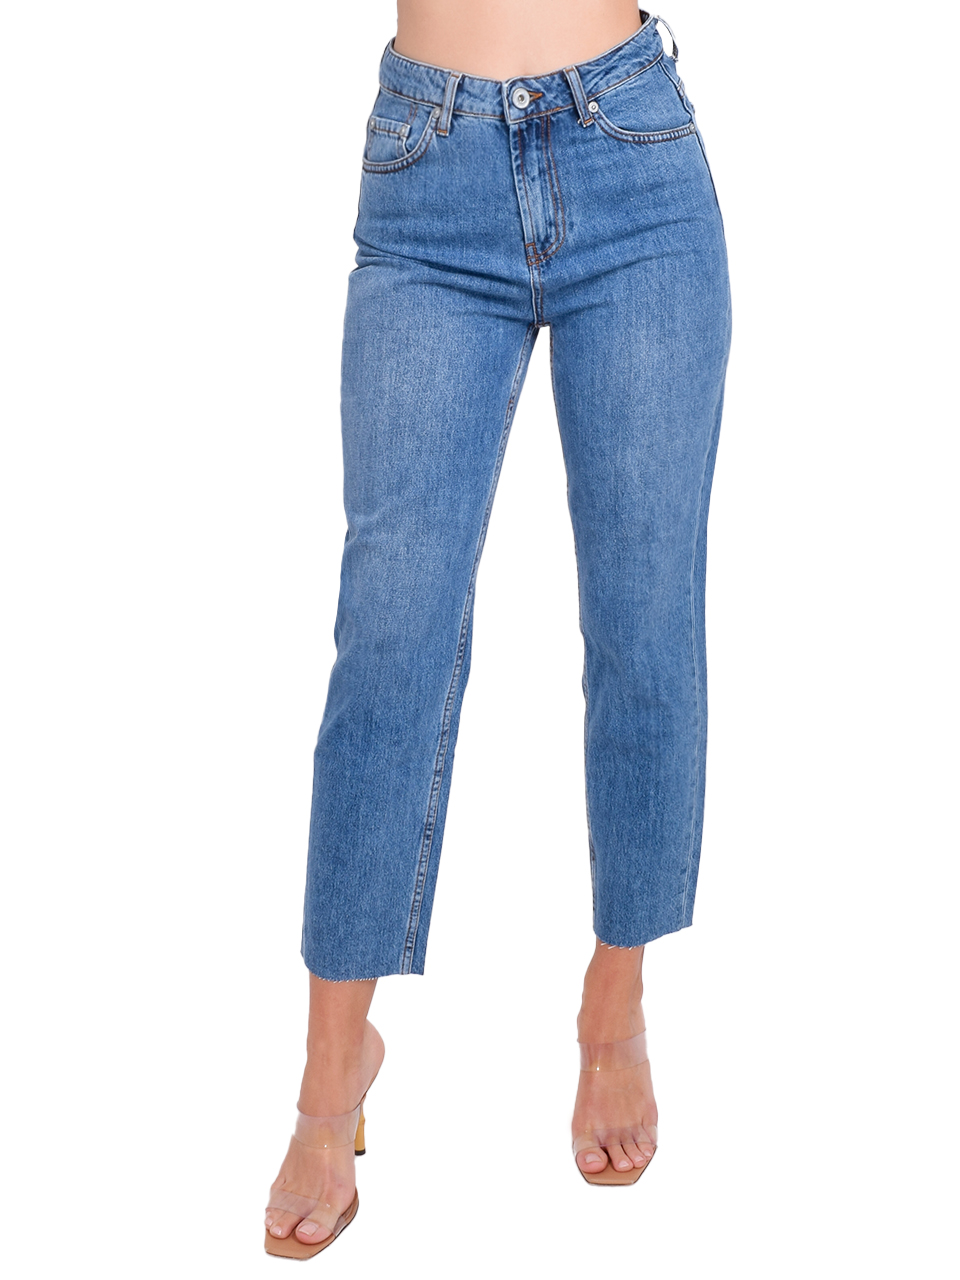 Ottod'Ame Mom Jean Front View  X1https://cdn11.bigcommerce.com/s-3wu6n/products/33256/images/110016/158__92045.1594335355.244.365.jpg?c=2X2